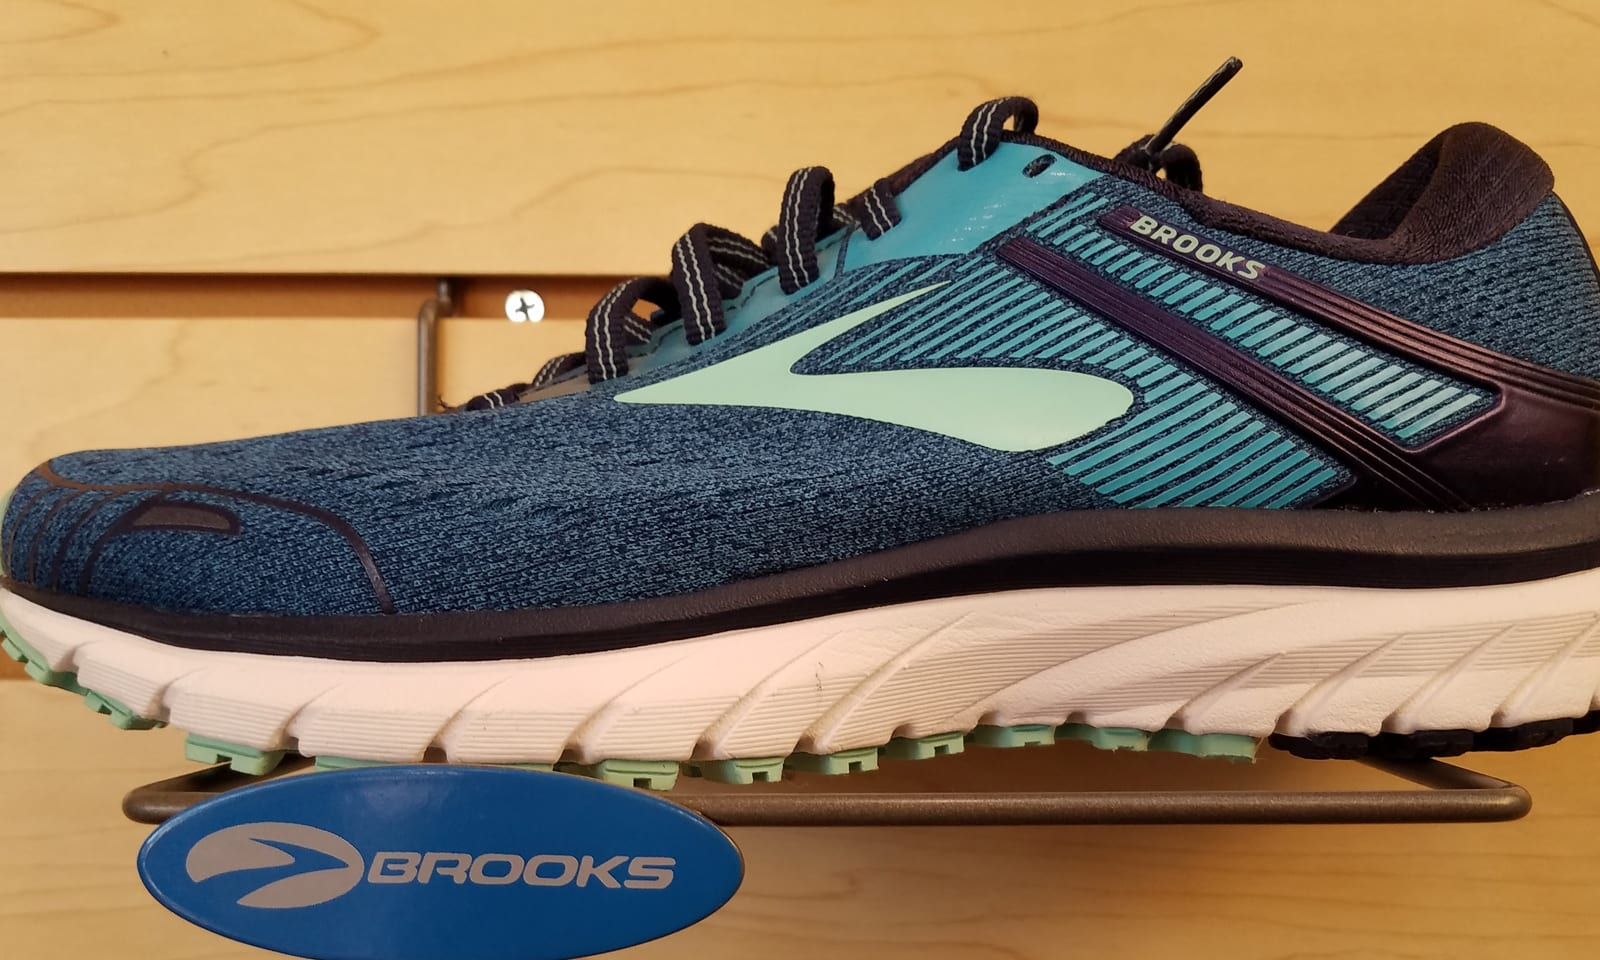 665edf85a4013 10 Brooks Running Shoes   2019 Reviews   - Shoe Adviser